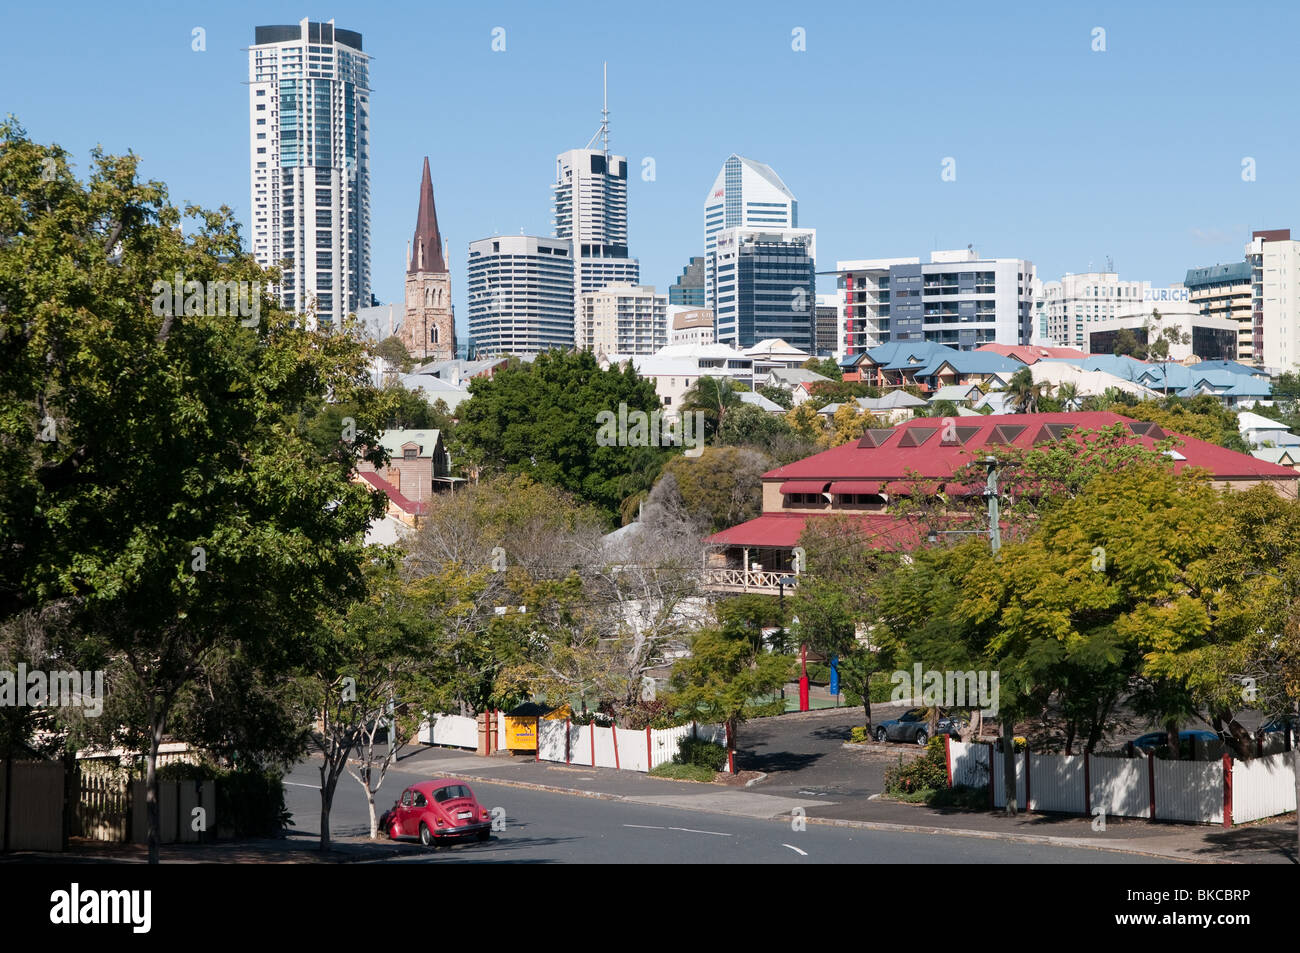 View of Brisbane City from Gregory Terrace, Brisbane, Queensland, Australia - Stock Image